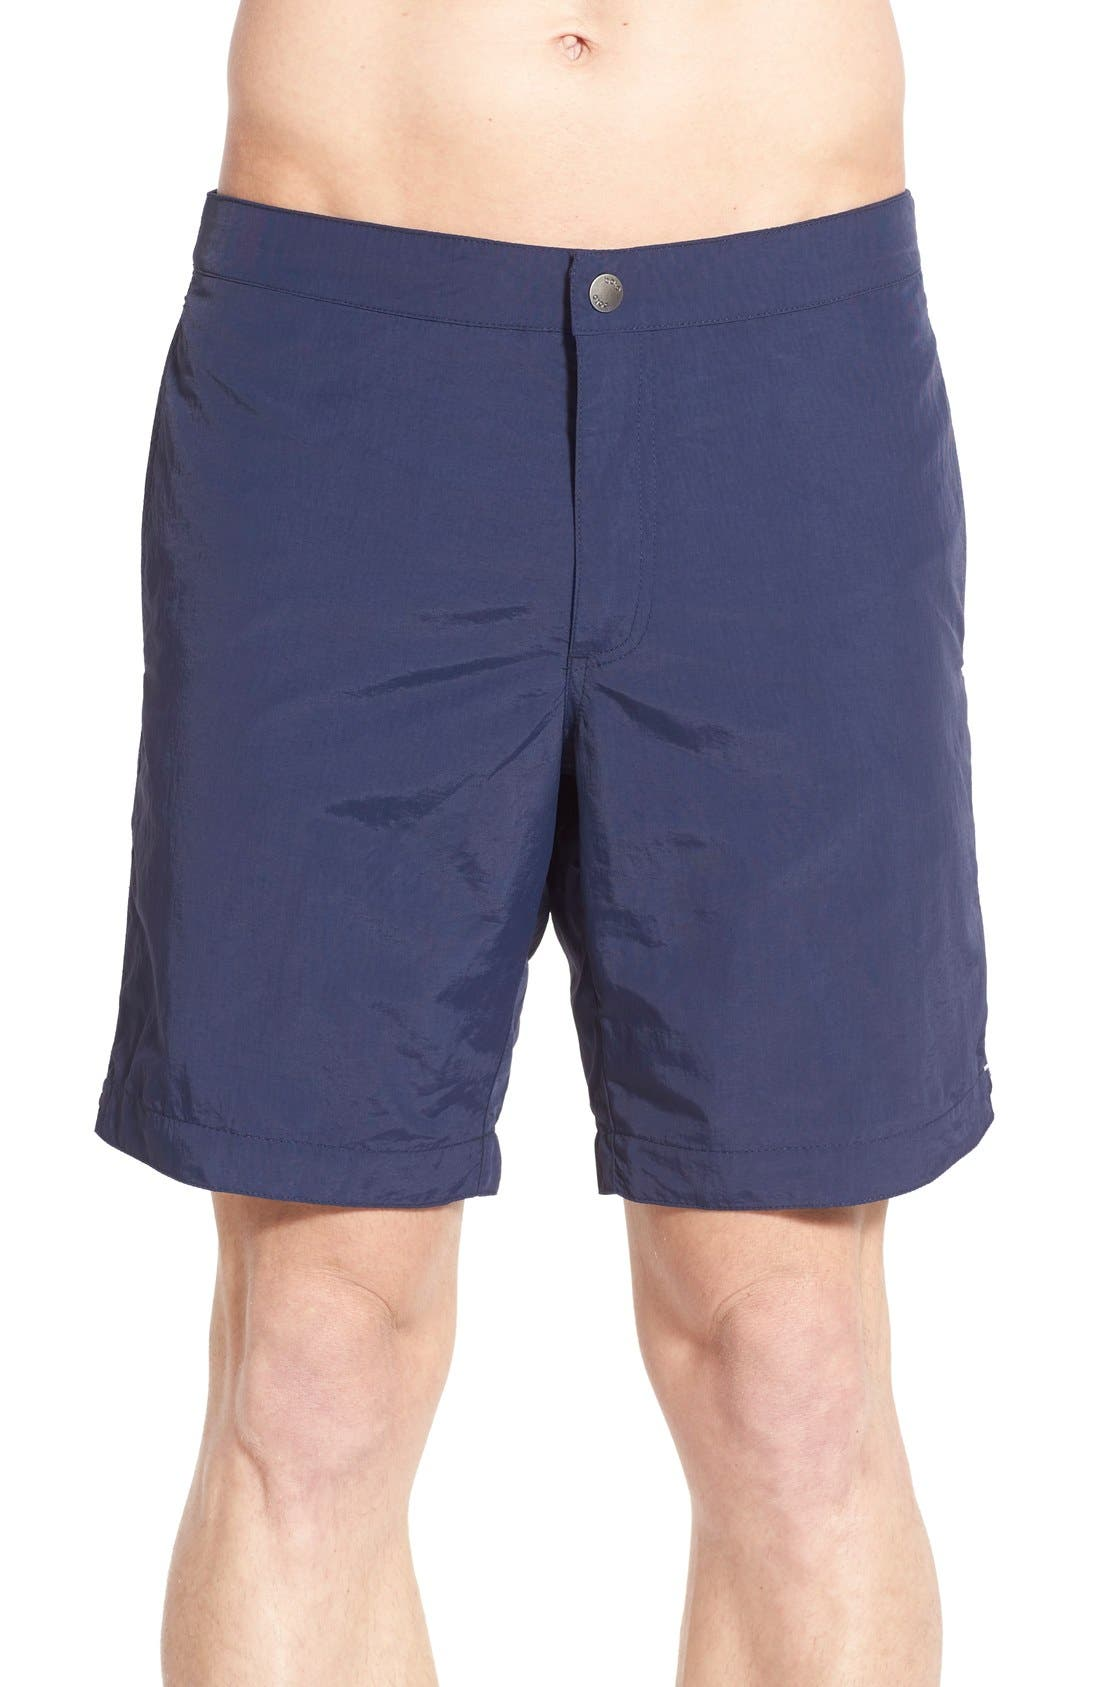 boto Aruba Tailored Fit 8.5 Inch Swim Trunks